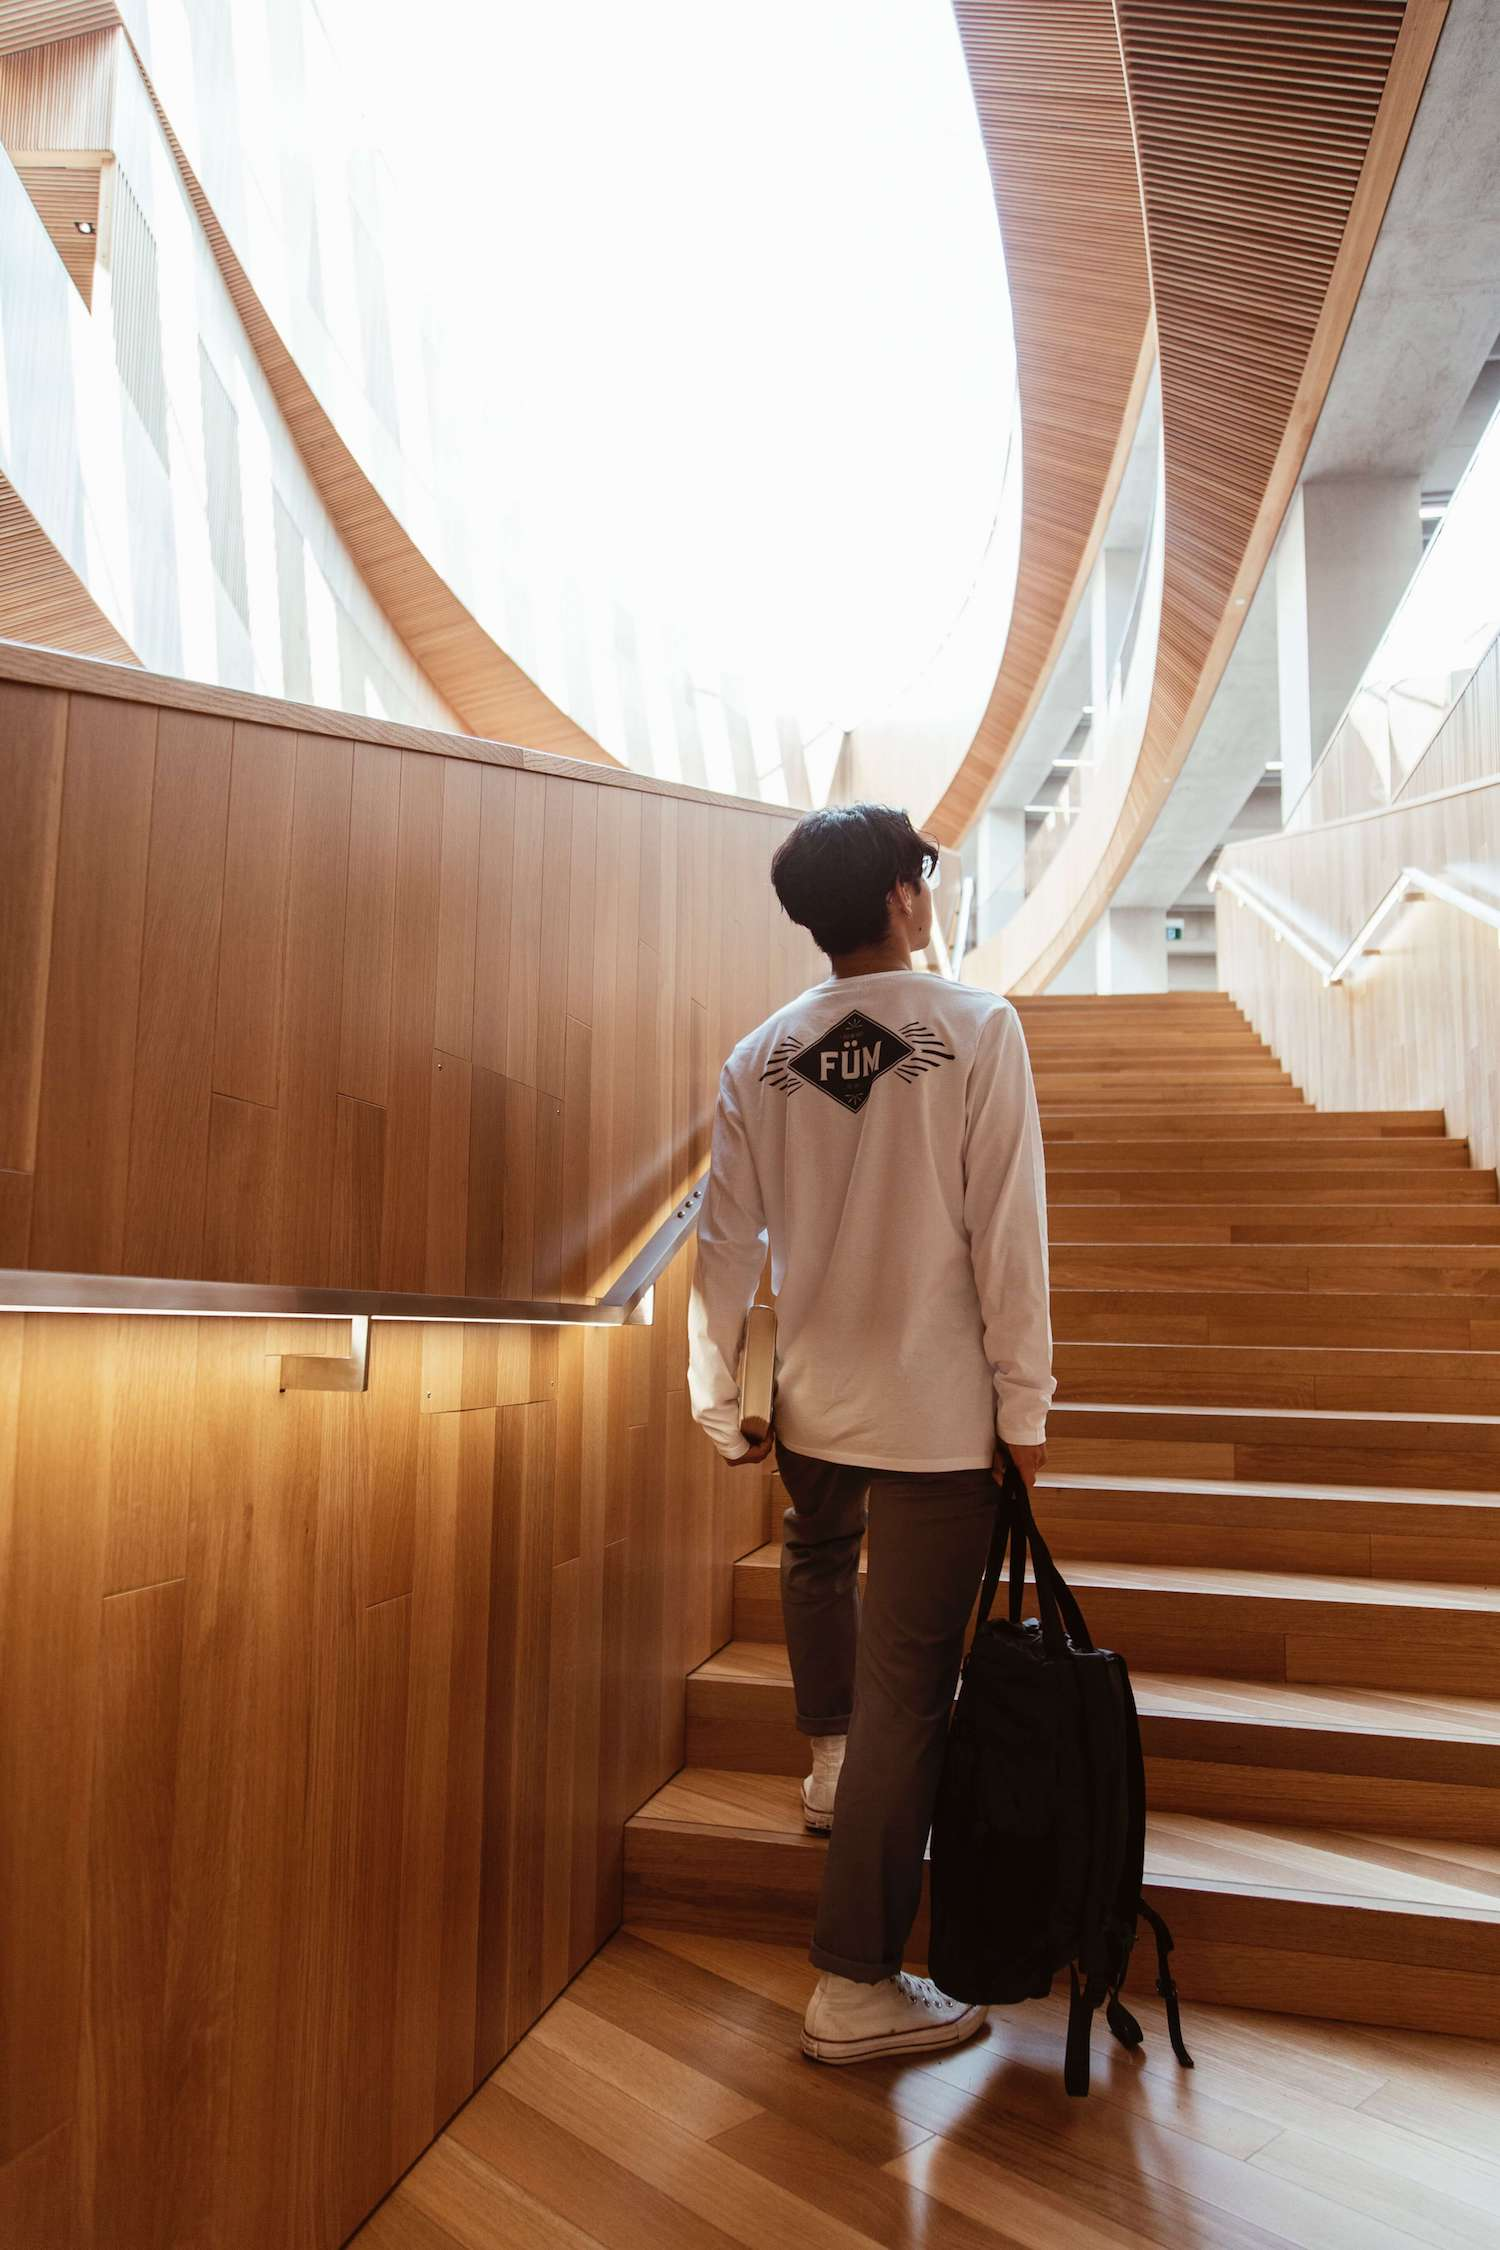 A young man going upstair in a modern designed library.